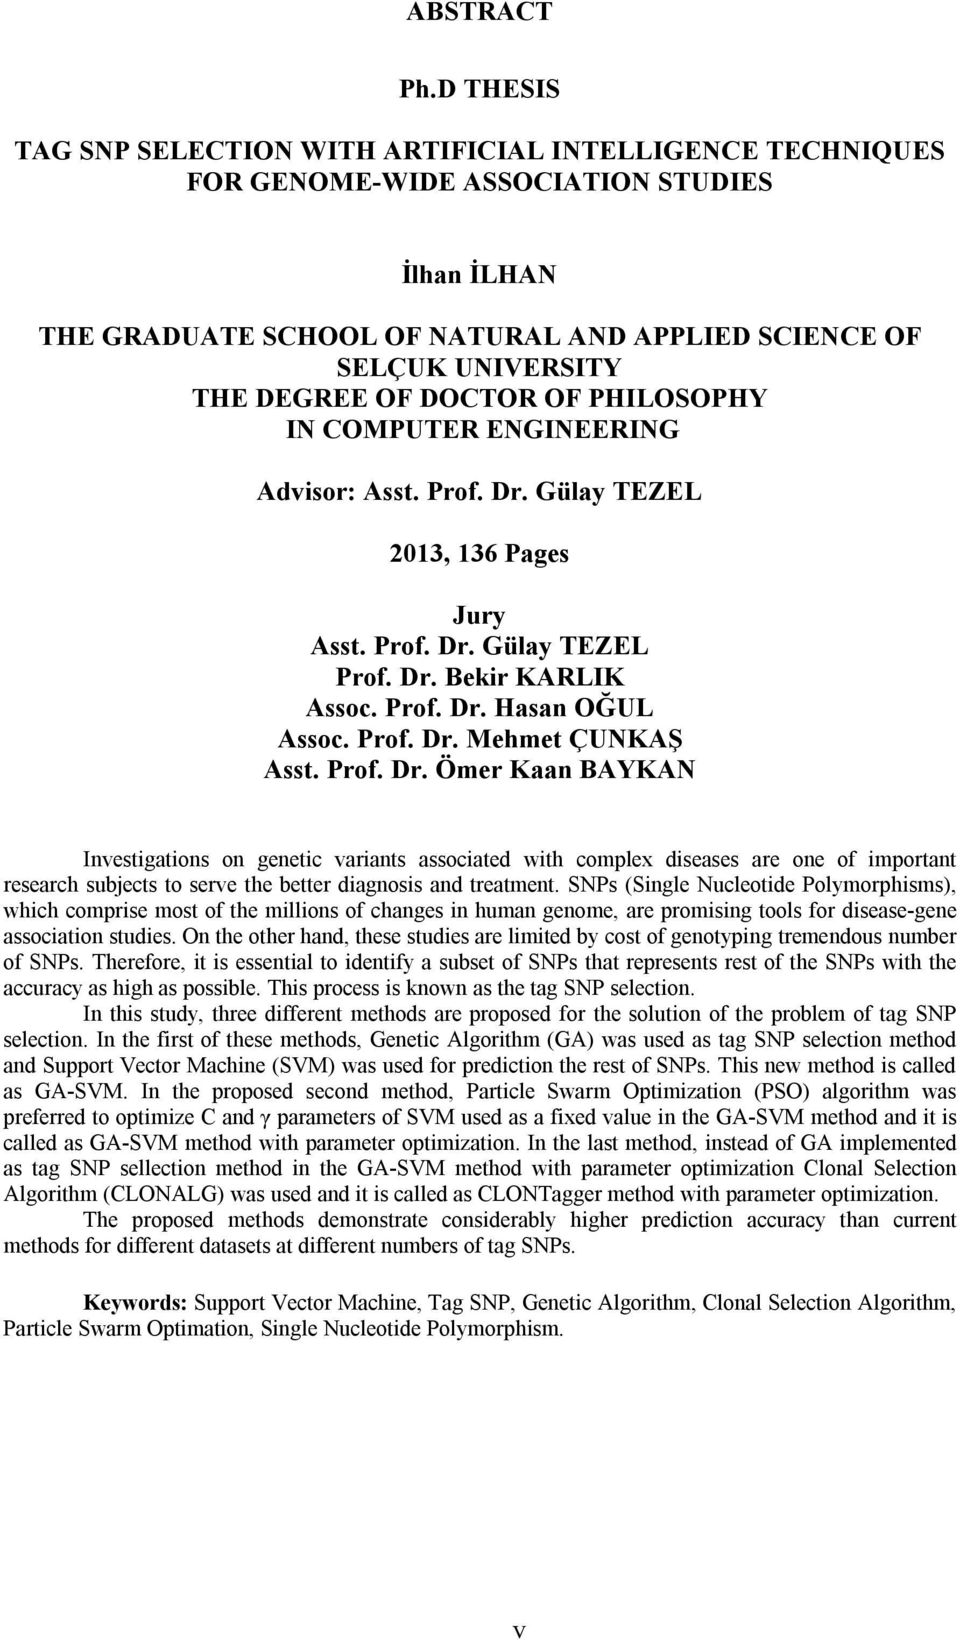 OF DOCTOR OF PHILOSOPHY IN COMPUTER ENGINEERING Advisor: Asst. Prof. Dr. Gülay TEZEL 2013, 136 Pages Jury Asst. Prof. Dr. Gülay TEZEL Prof. Dr. Bekir KARLIK Assoc. Prof. Dr. Hasan OĞUL Assoc. Prof. Dr. Mehmet ÇUNKAŞ Asst.